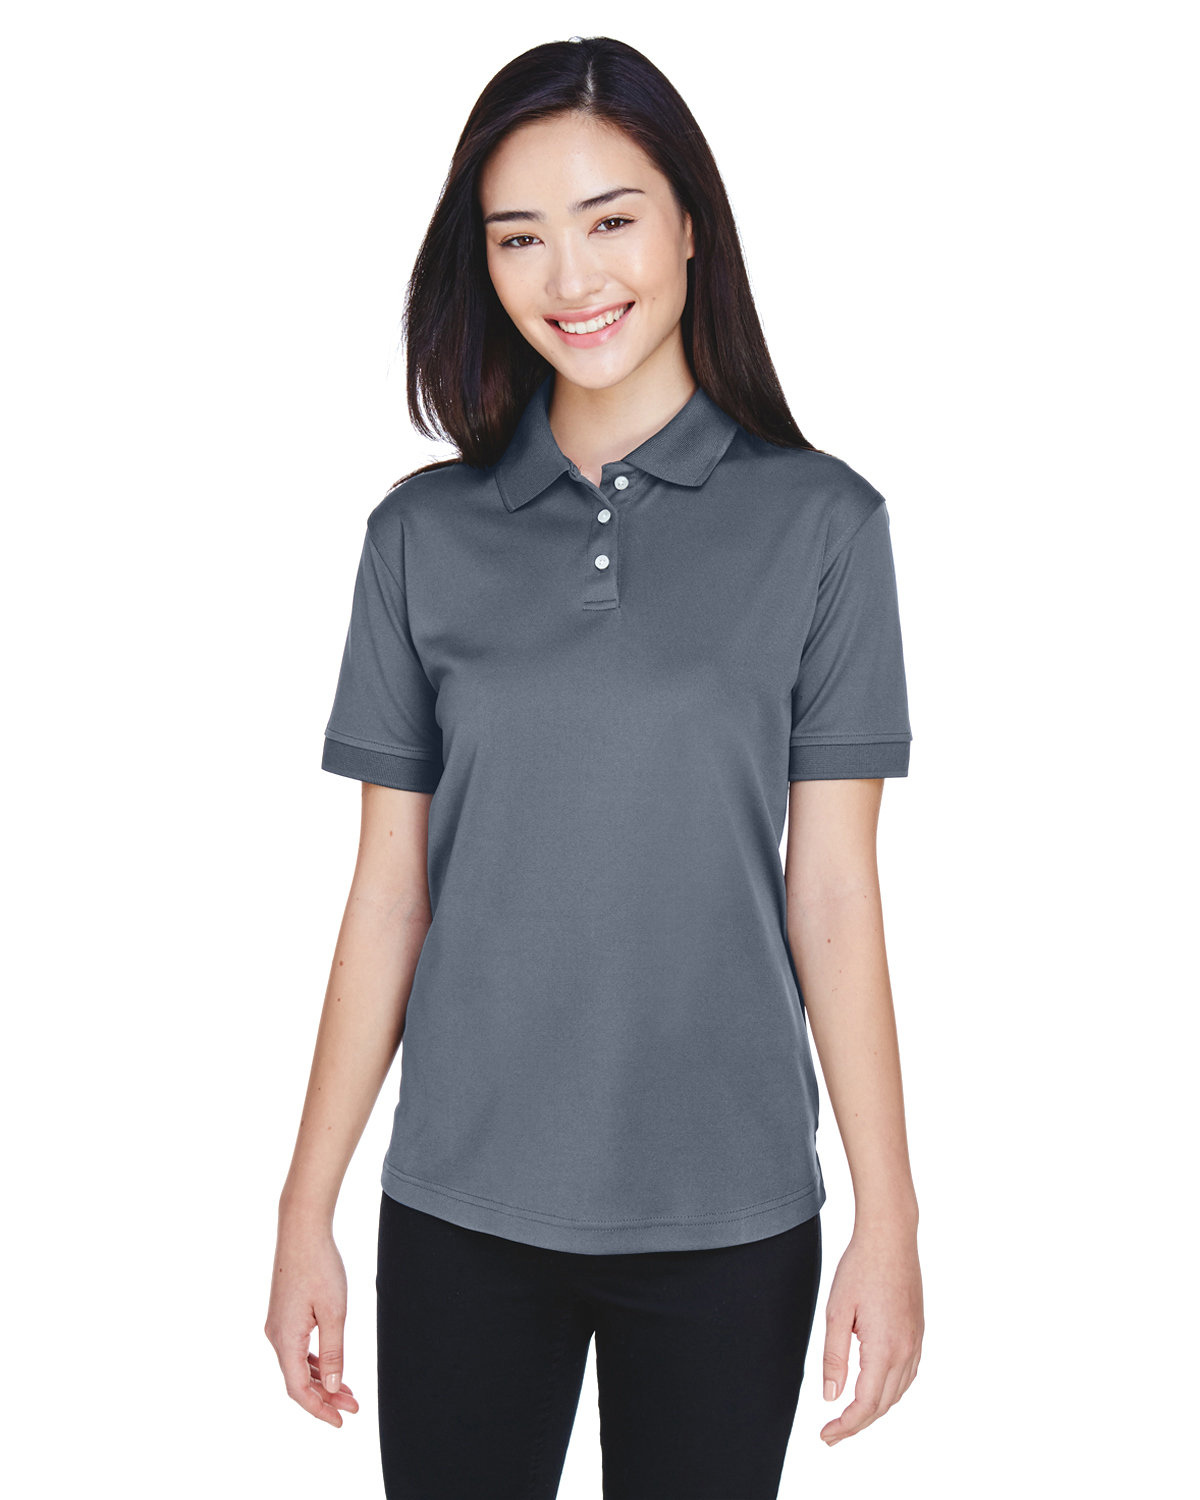 UltraClub Ladies' Platinum Performance Piqué Polo with TempControl Technology CHARCOAL